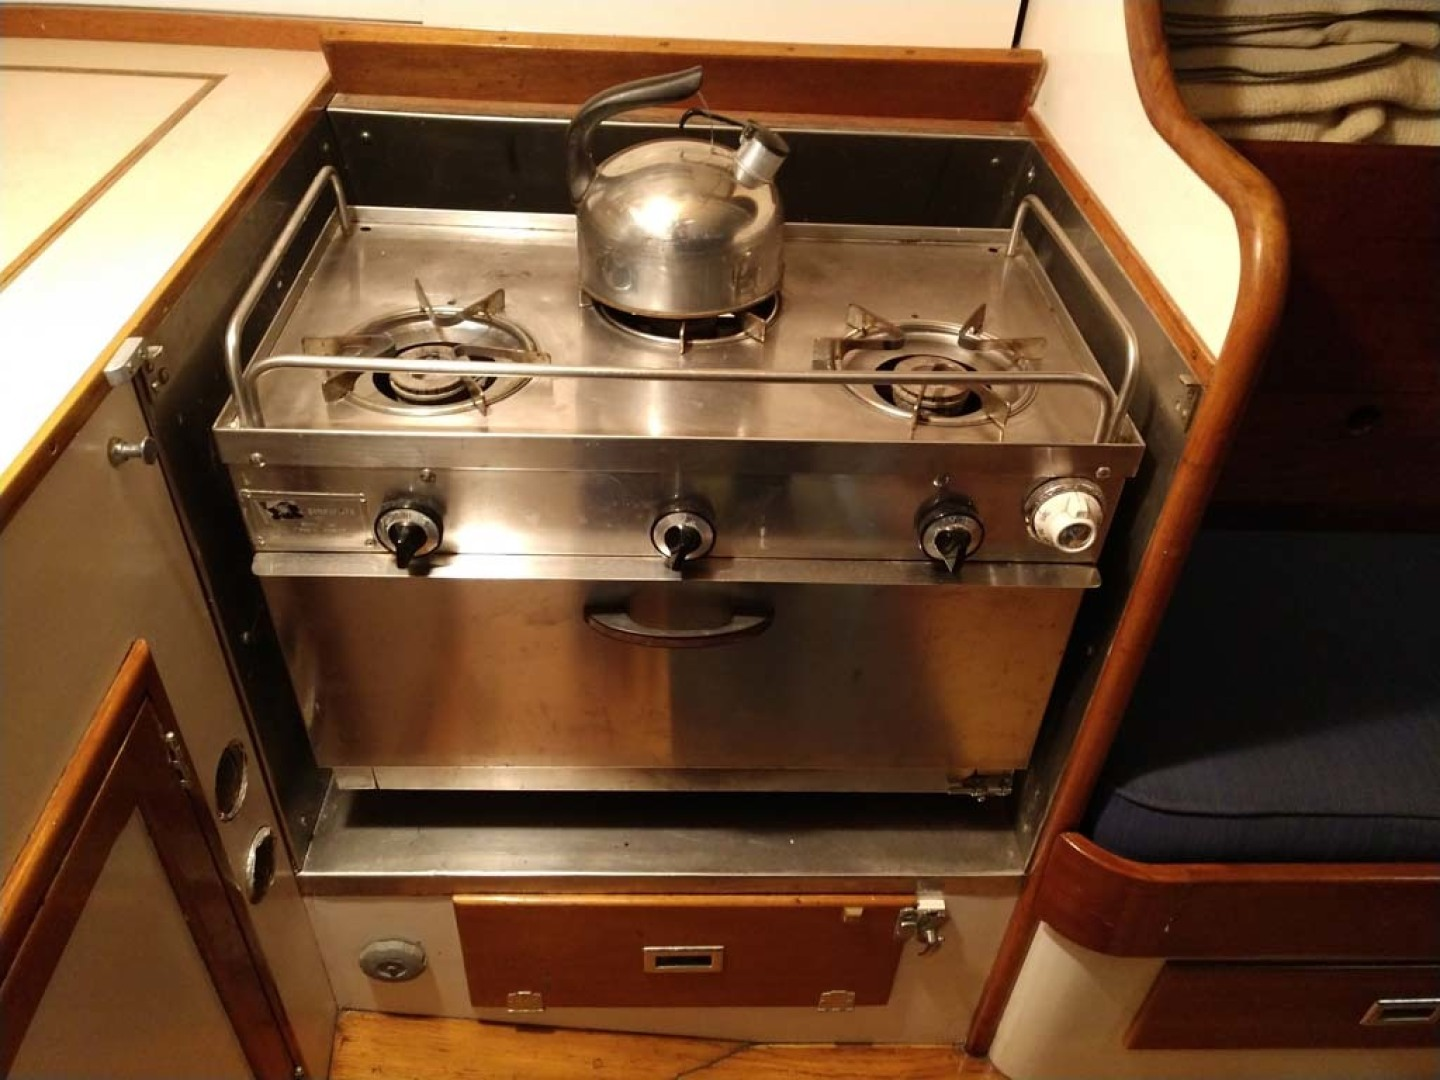 Hinckley-Bermuda 40 Yawl 1970-Rhodora South Berwick-Maine-United States-Galley Cooking Station-1585519 | Thumbnail